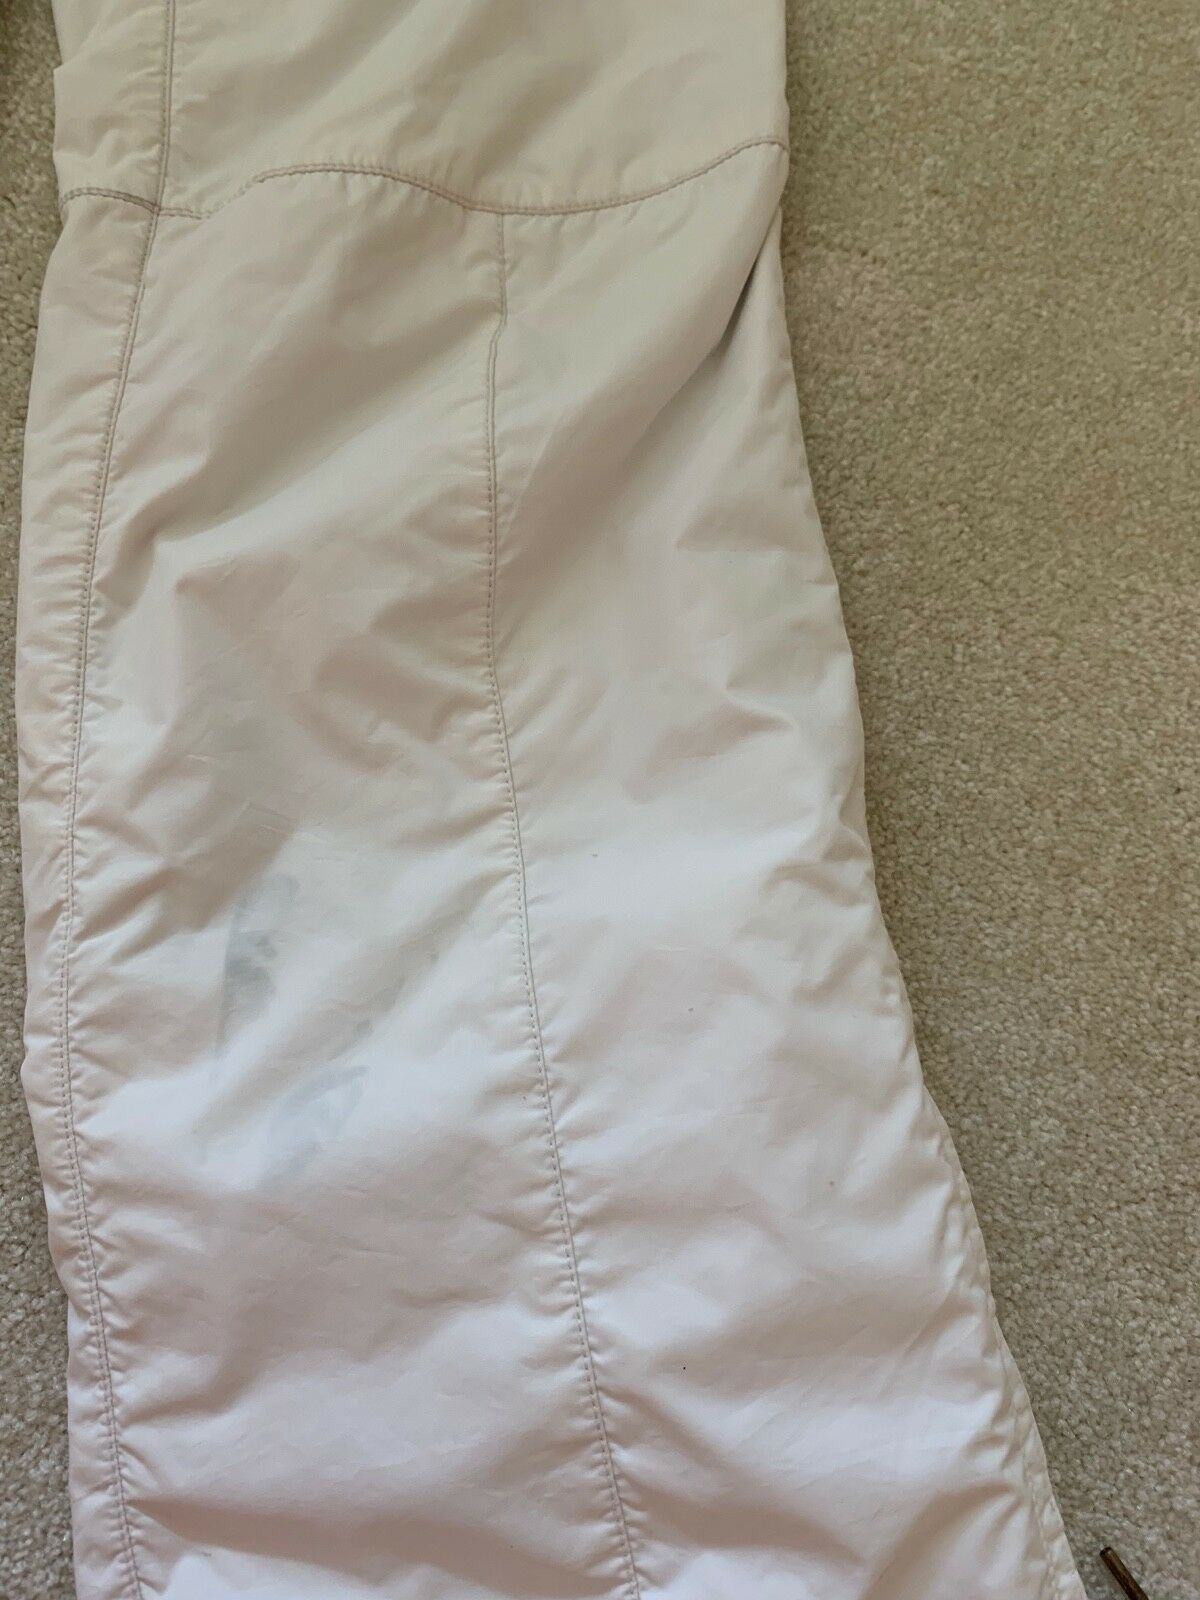 JSX. JET SET St. Moritz White with Red Star Ski Pants, Sz.1 Purchased in Gorsuch image 3